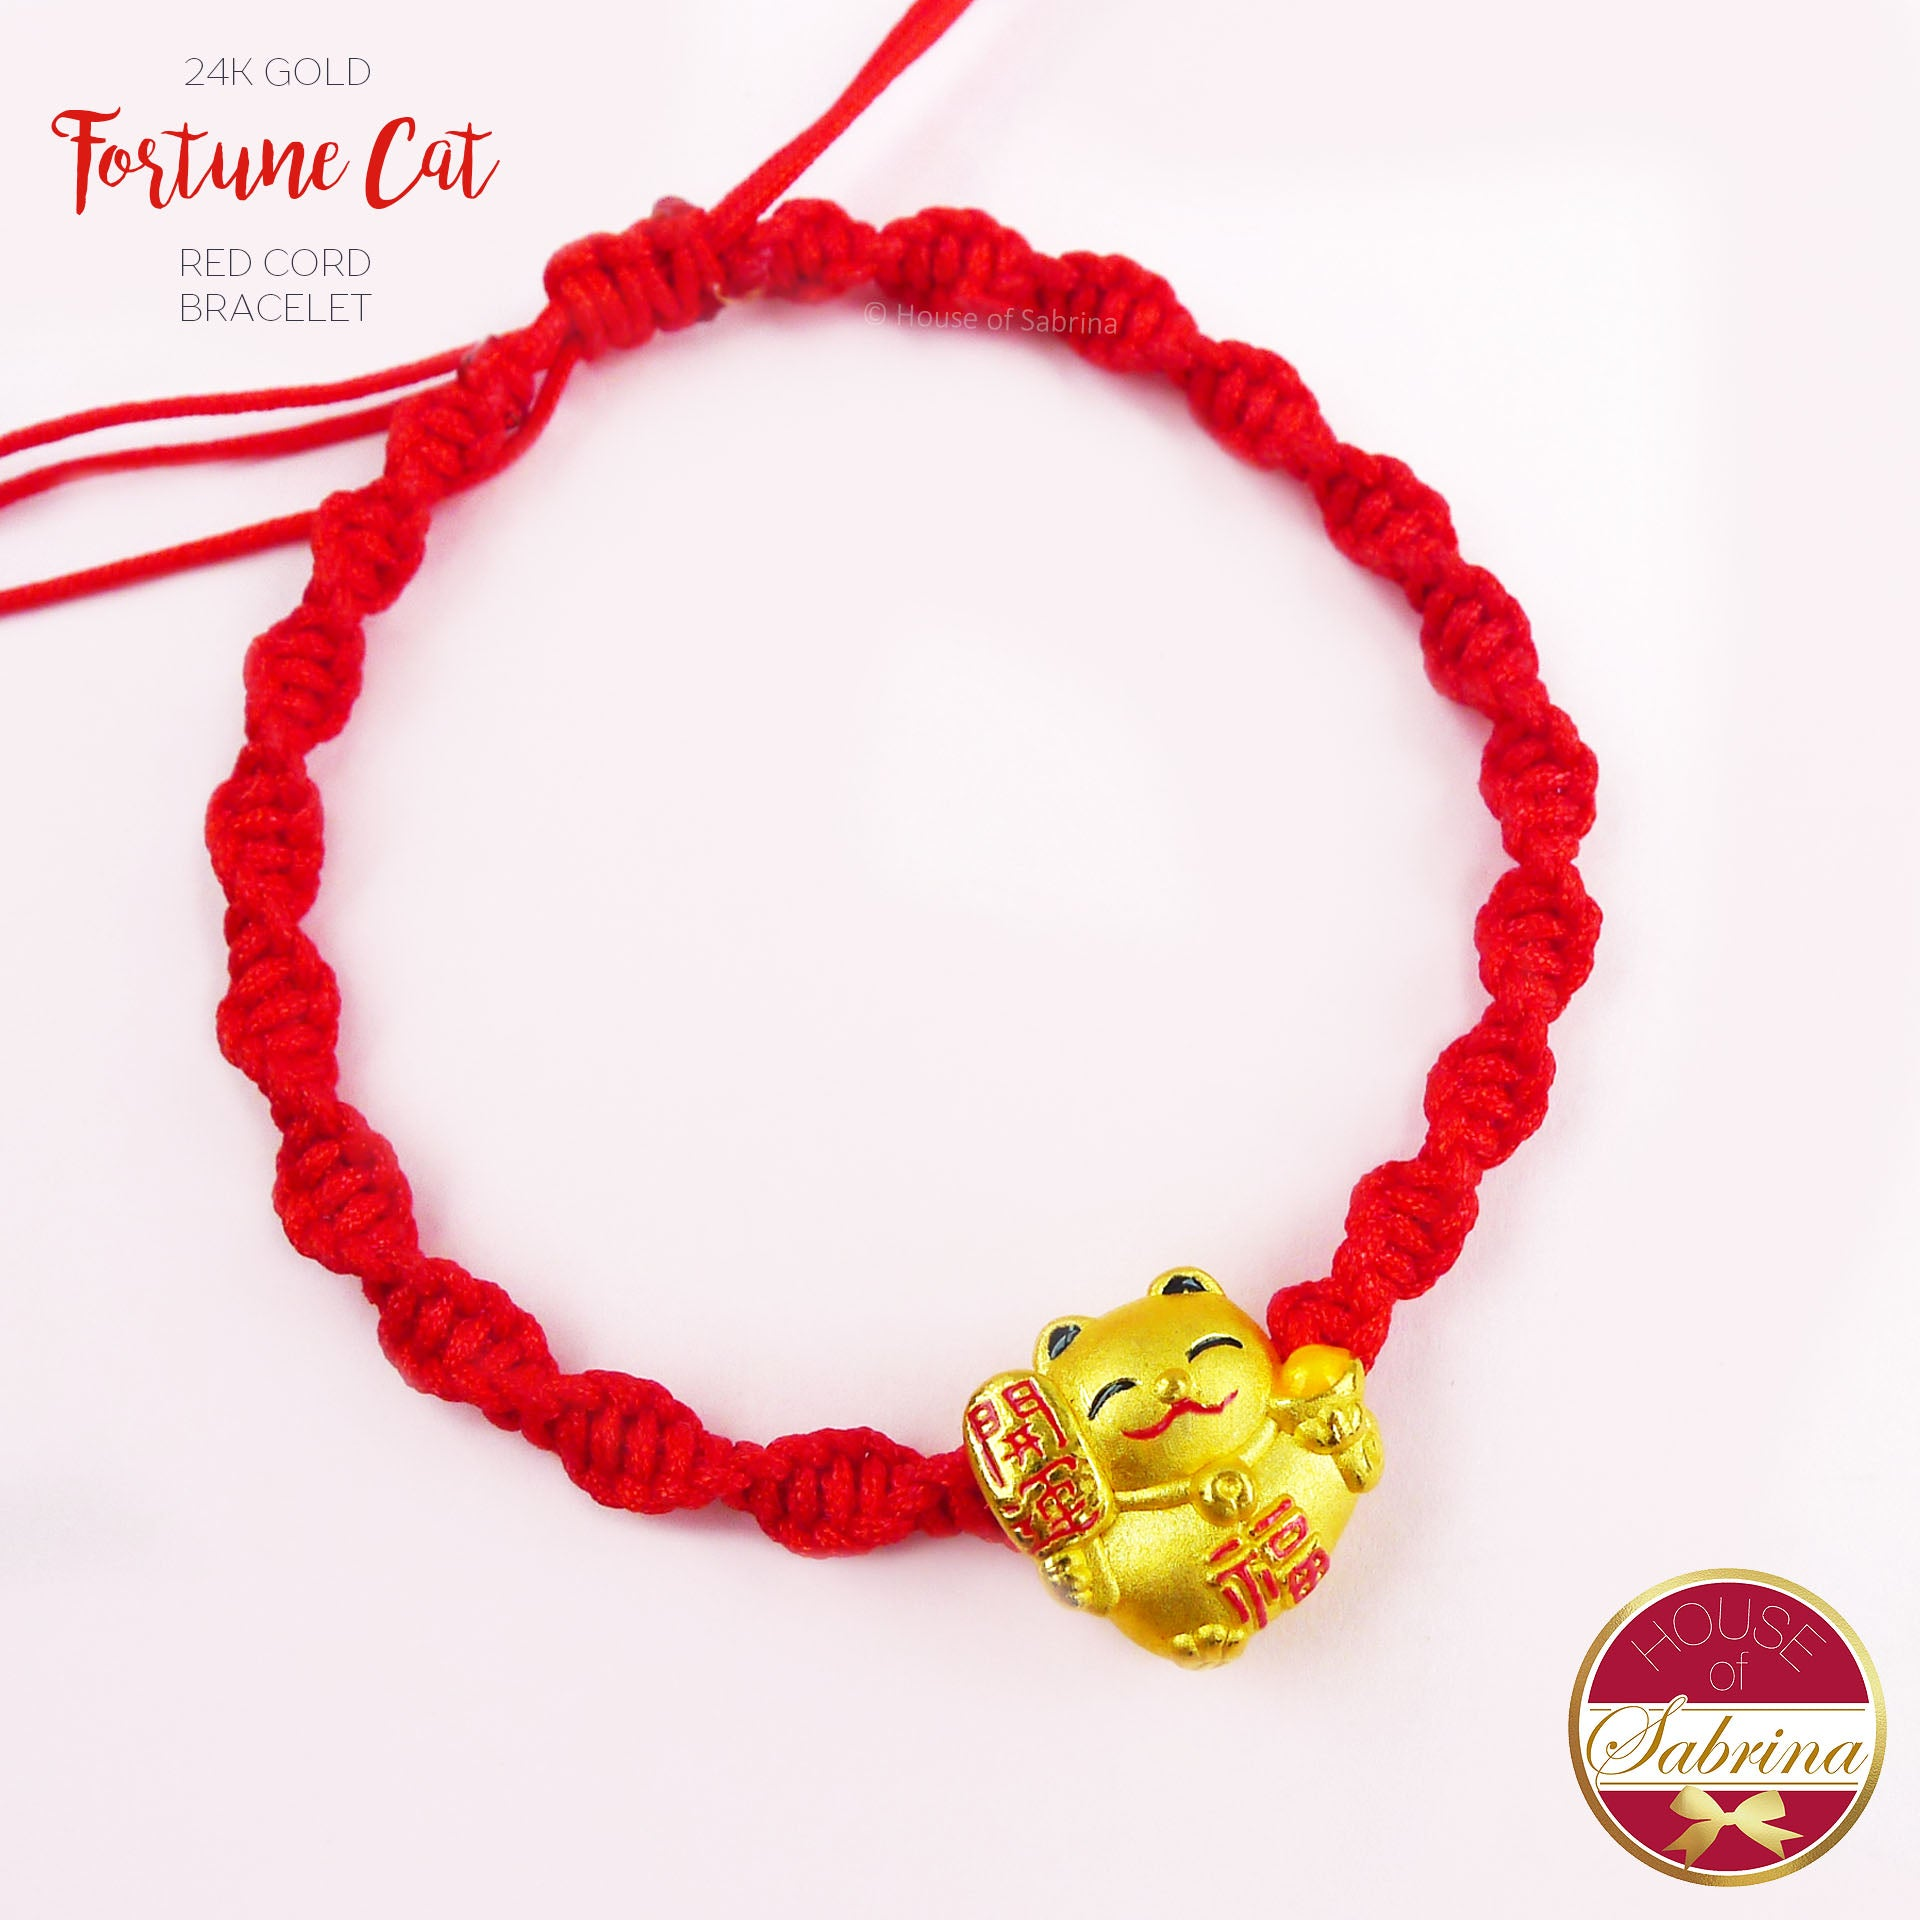 24K GOLD COLOURED FORTUNE CAT ON RED CORD LUCKY CHARM BRACELET